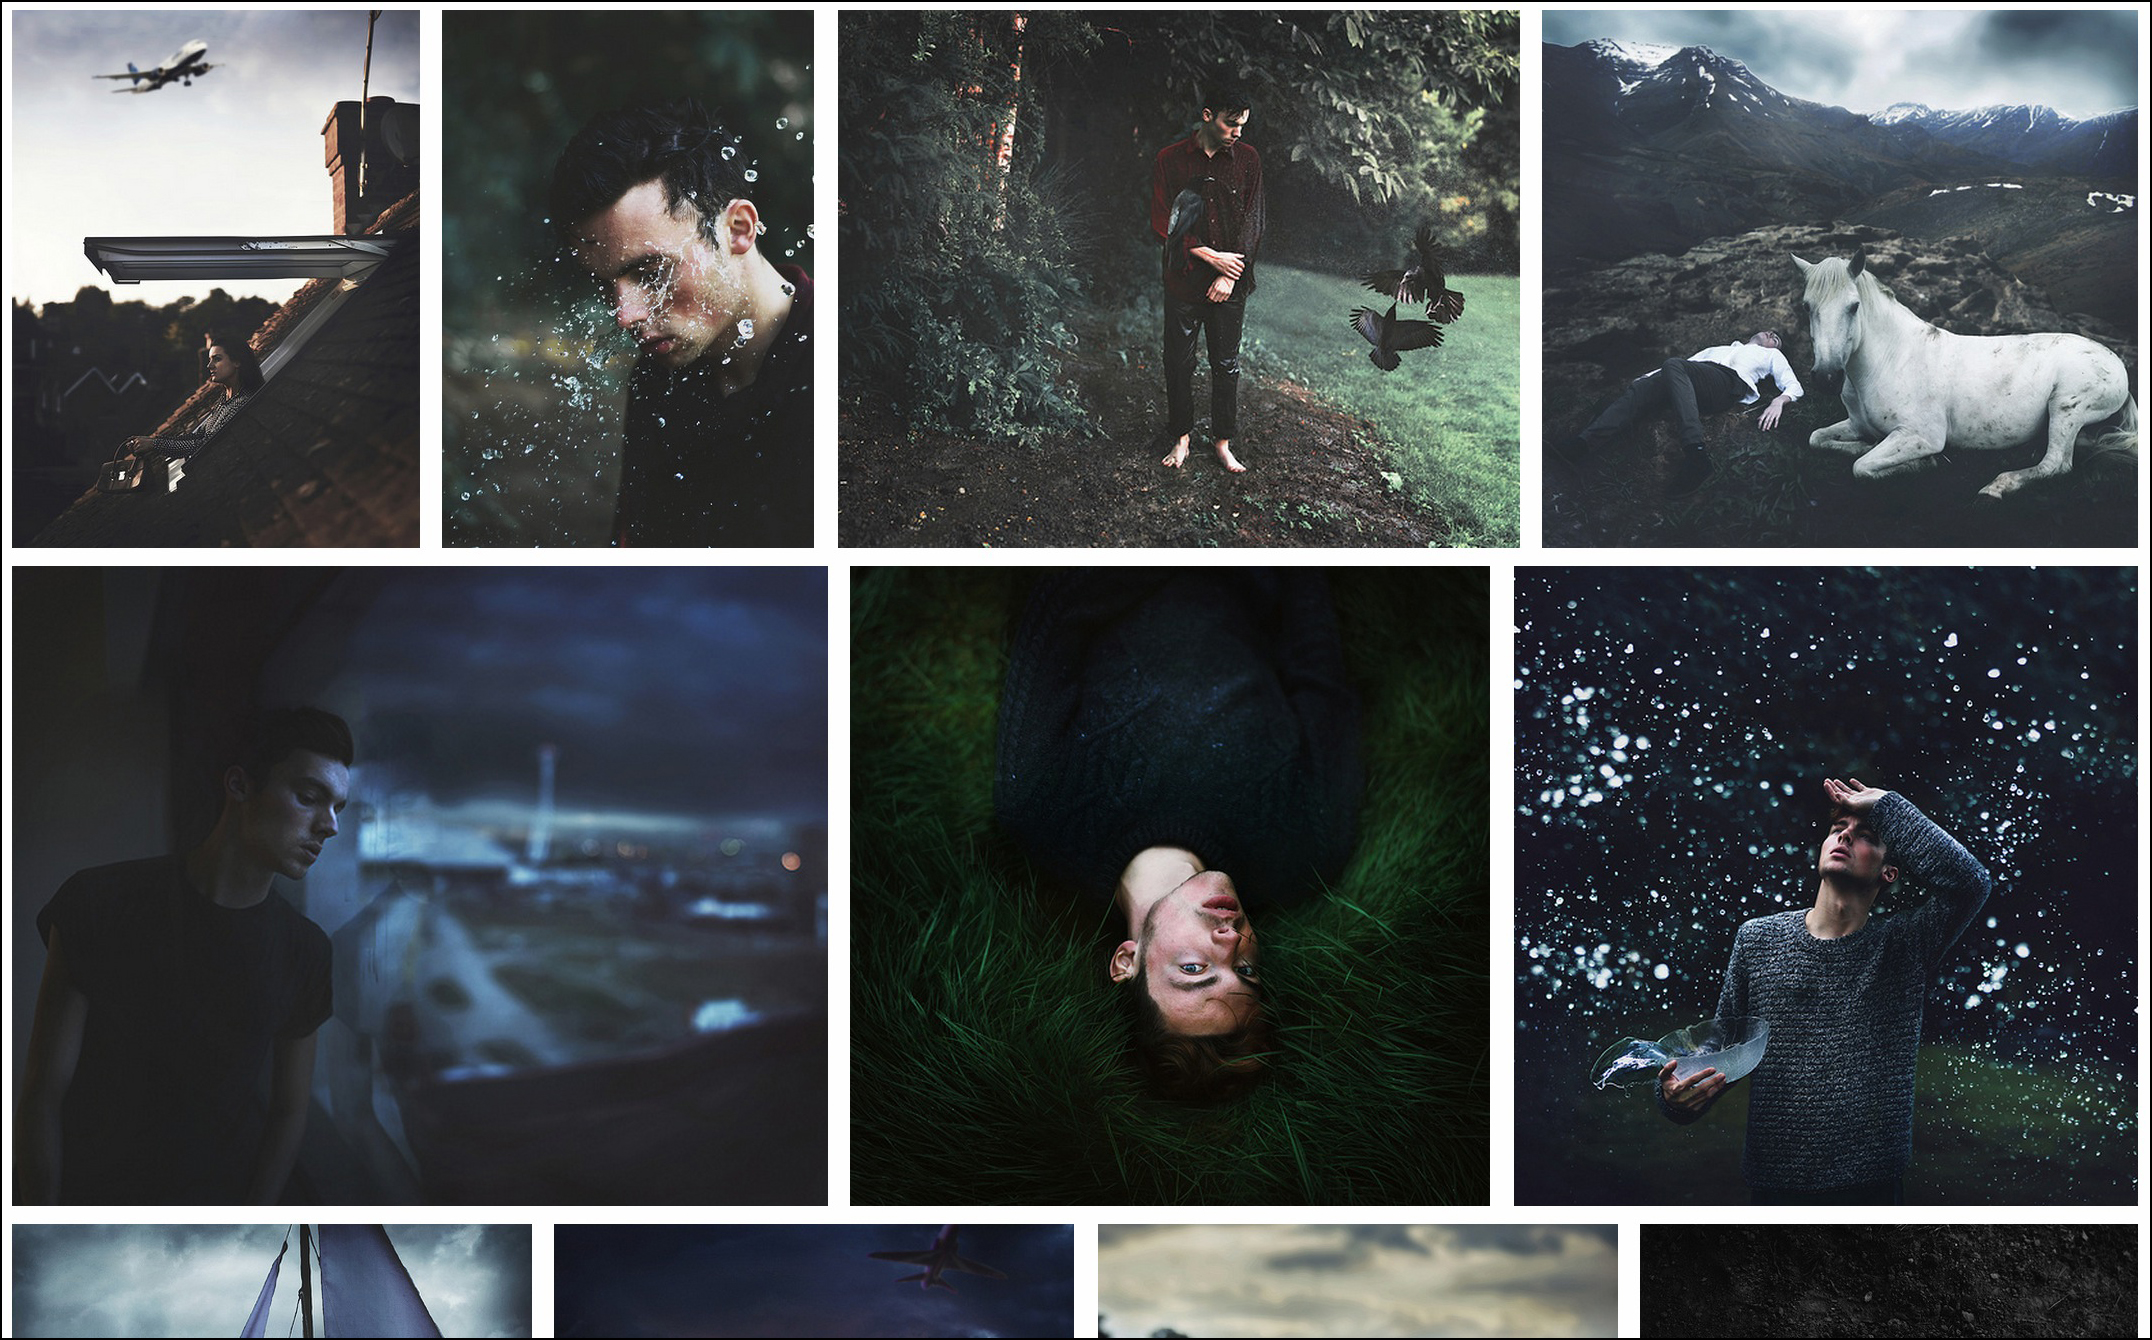 Photos from Oliver Charles' photostream, one of the photographers selected for 20 under 20.